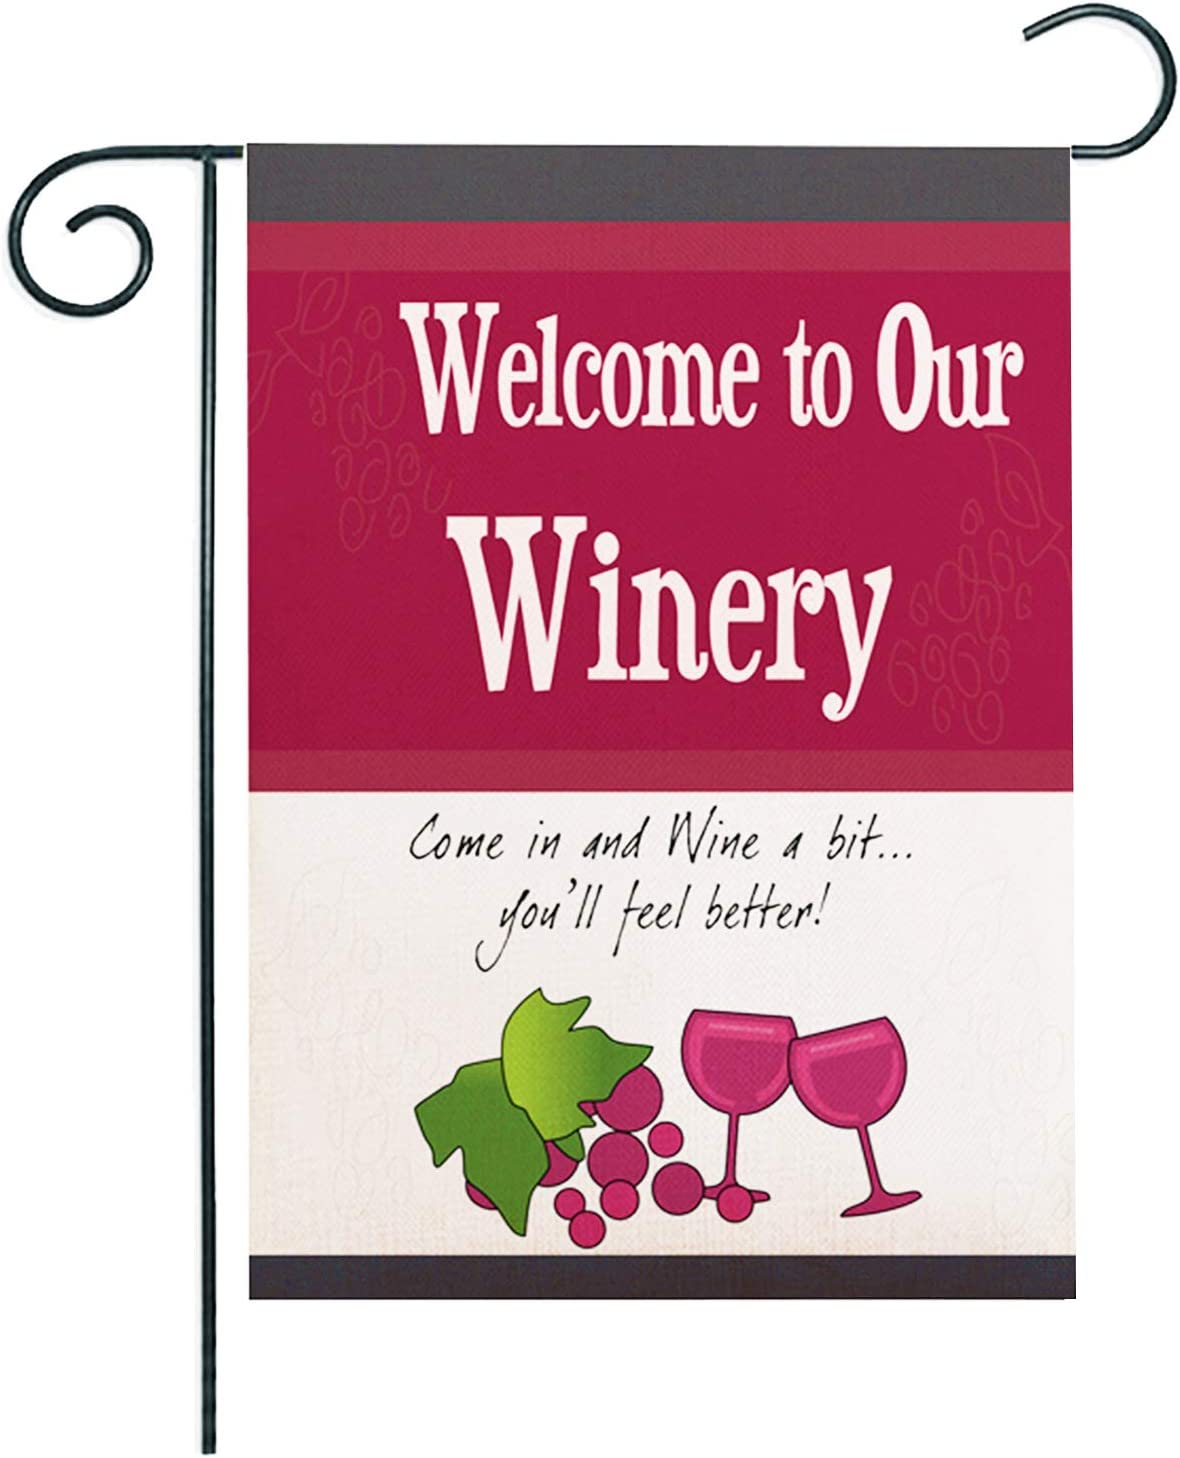 ZUEXT Welcome to Our Winery Garden Flag 12.5x18 Inch, Burlap Vertical Double Sided Yard Flags with Painted Bunch Vineyard Red Wine, Seasonal Decorative Spring House Yard Sign, Door Hanger Wall Decor